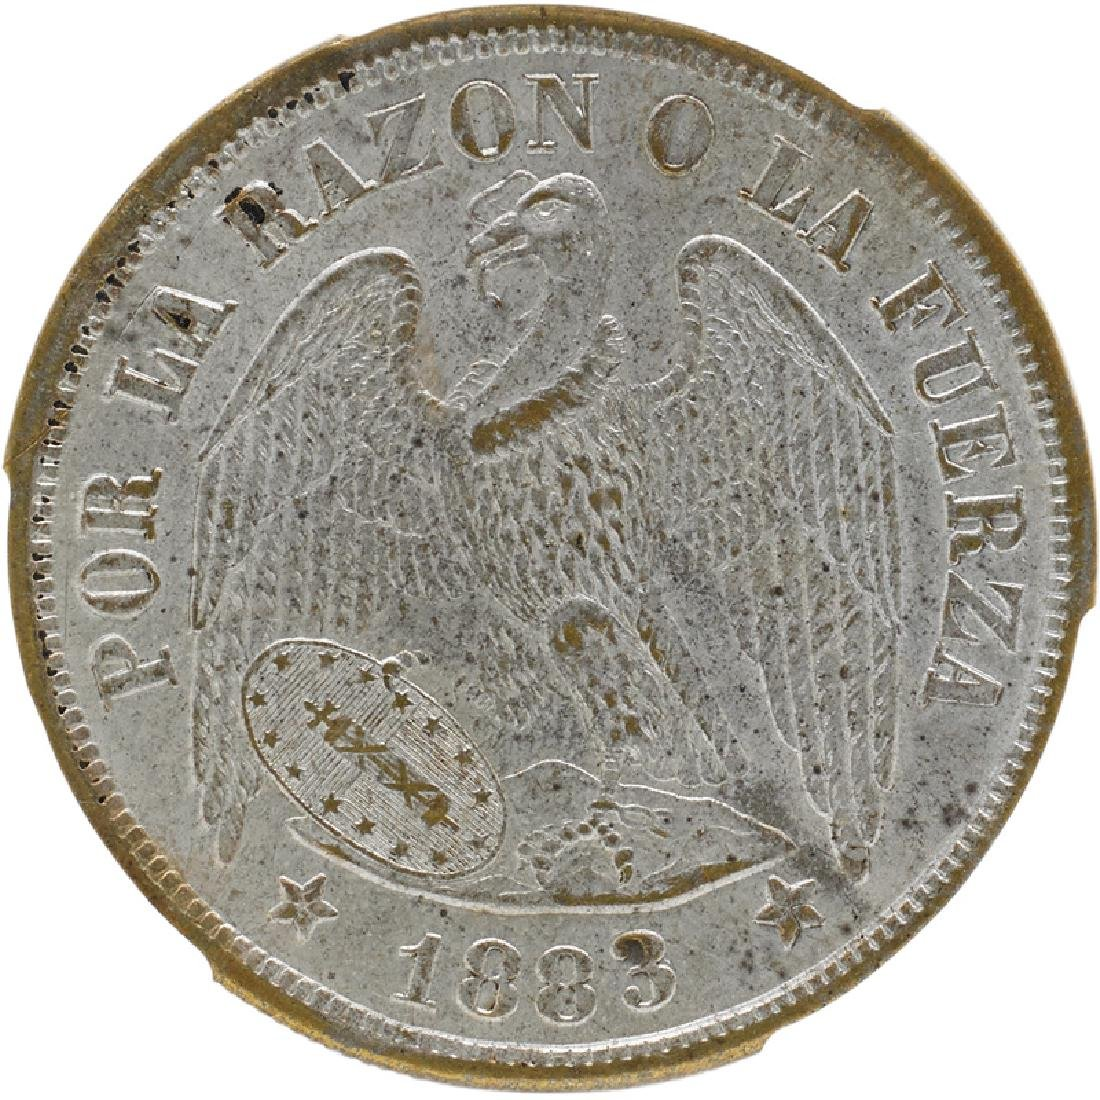 GRADED COINS OF SOUTH AND CENTRAL AMERICA